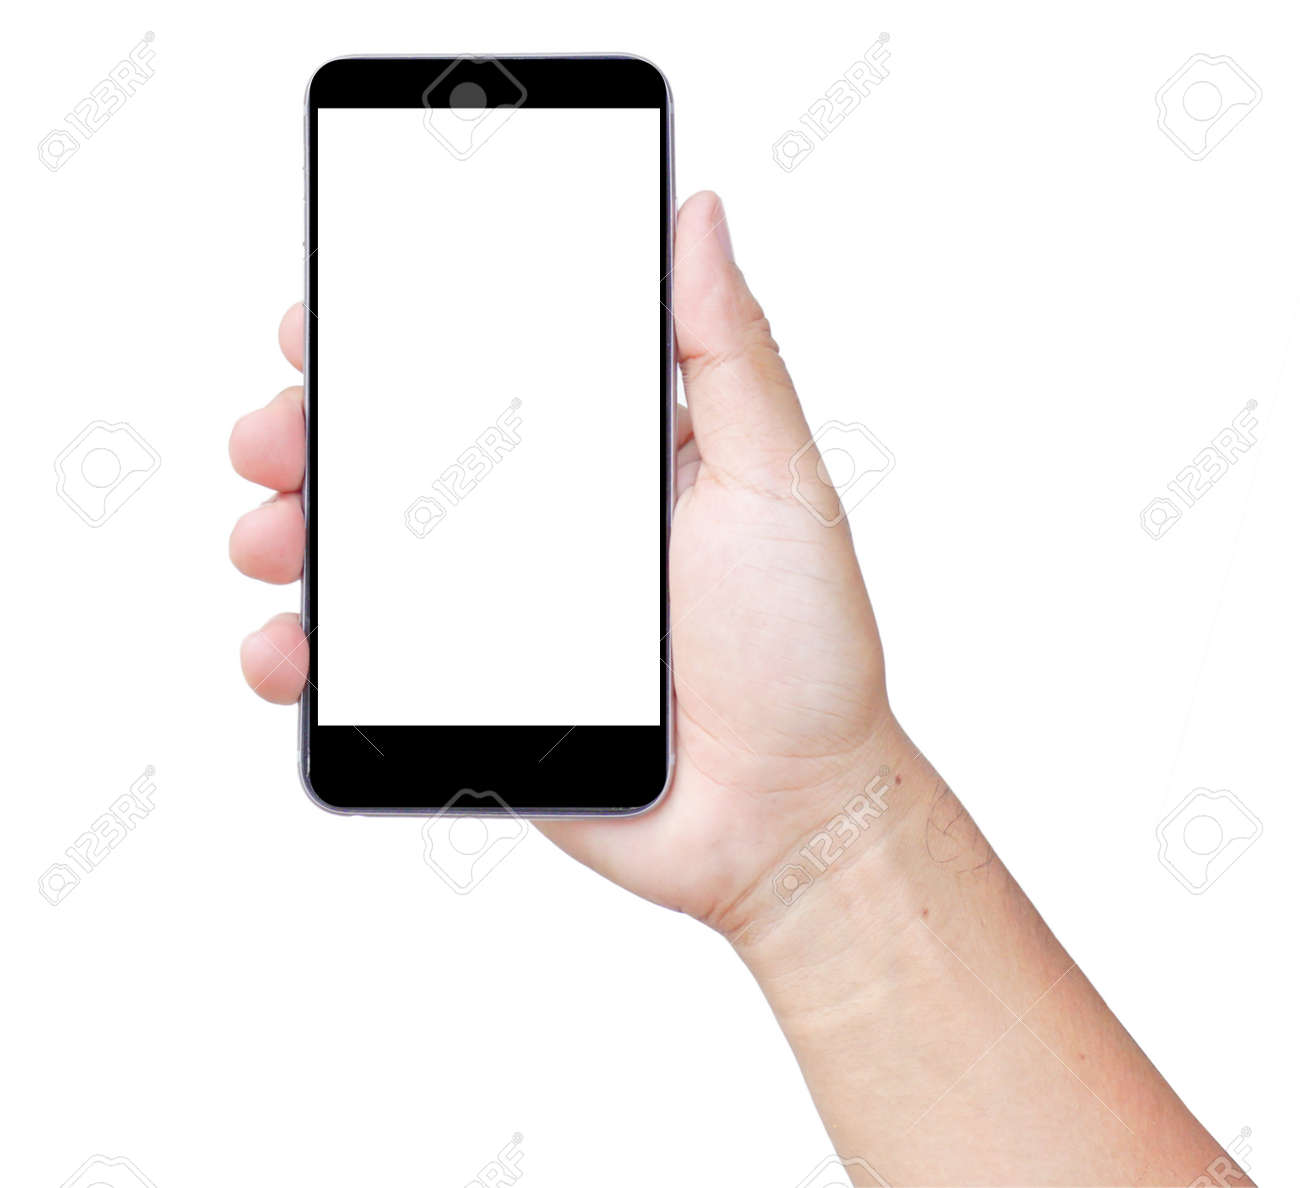 Touch screen smartphone, in hand - 148642043